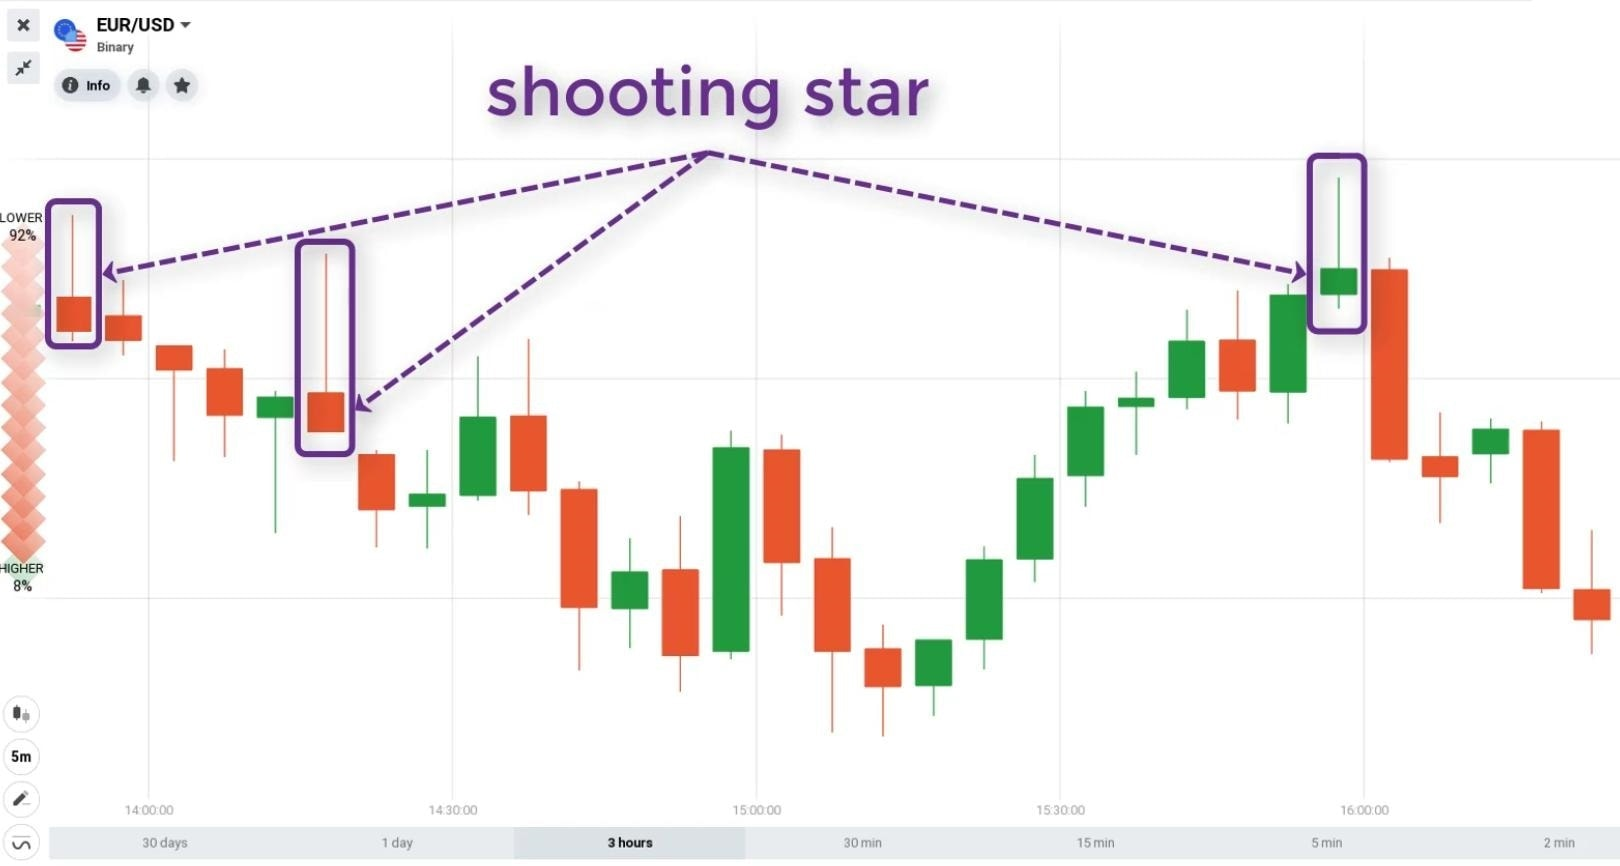 Shooting Star candle on the Japanese price chart